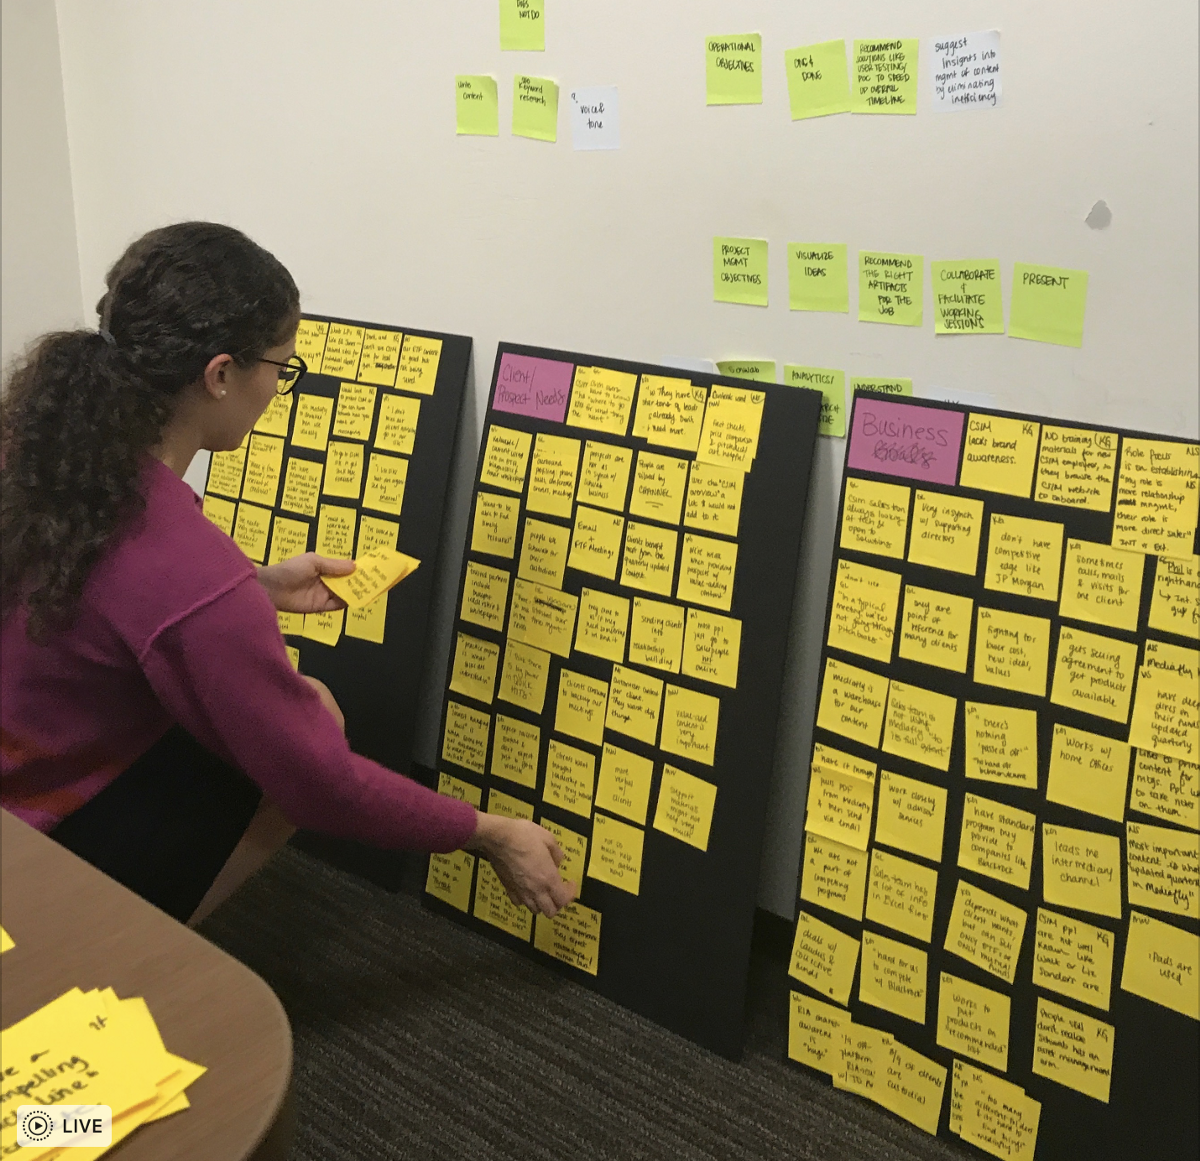 My old team mate, Luna, sorting through user interview insights on sticky notes.